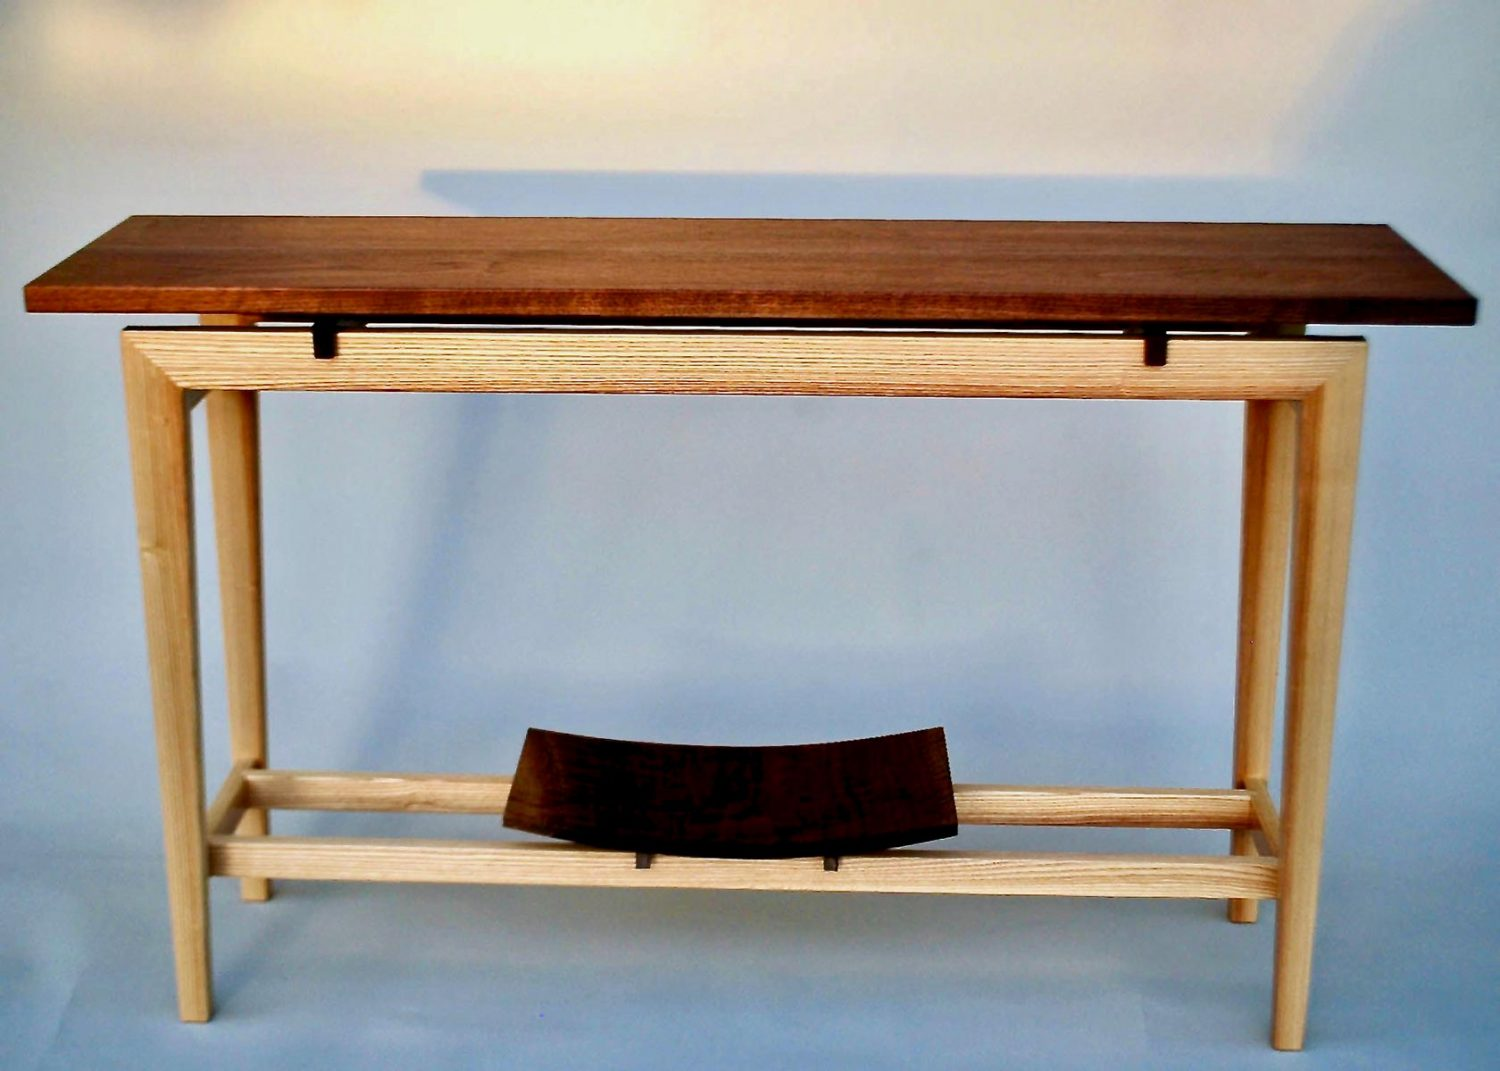 March 2021 Exhibits and Virtual Tour - Handcrafted hall table by Jens Sehm